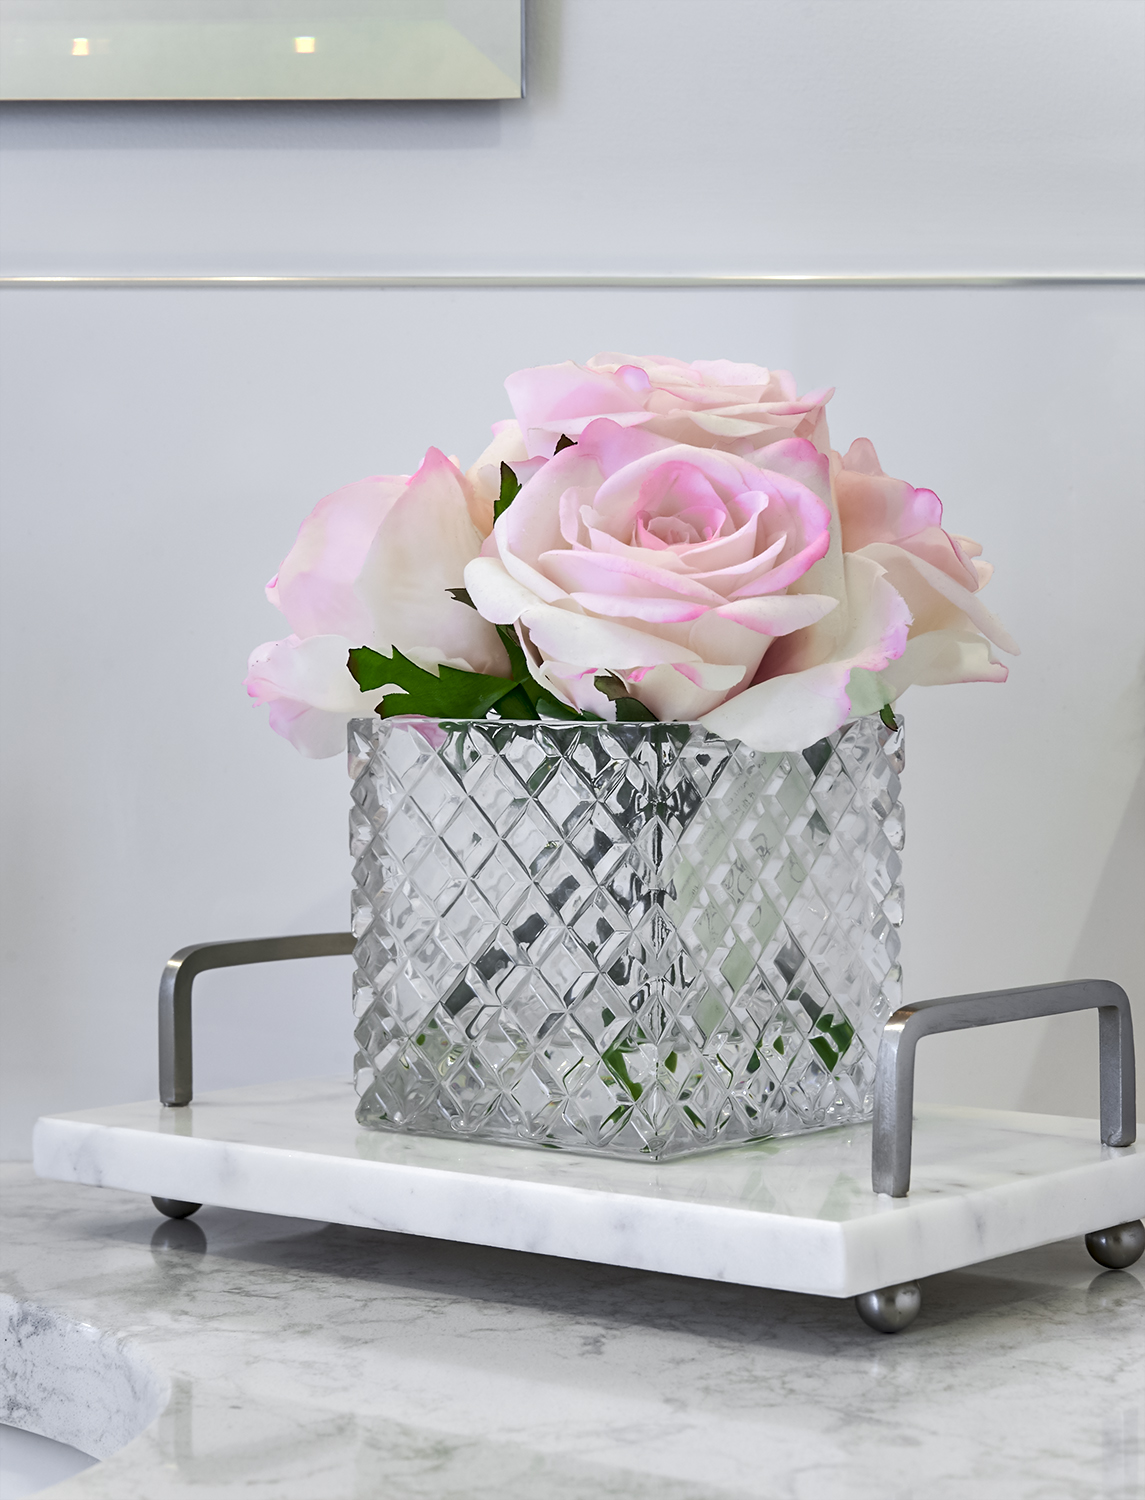 floral & marble tray vignette